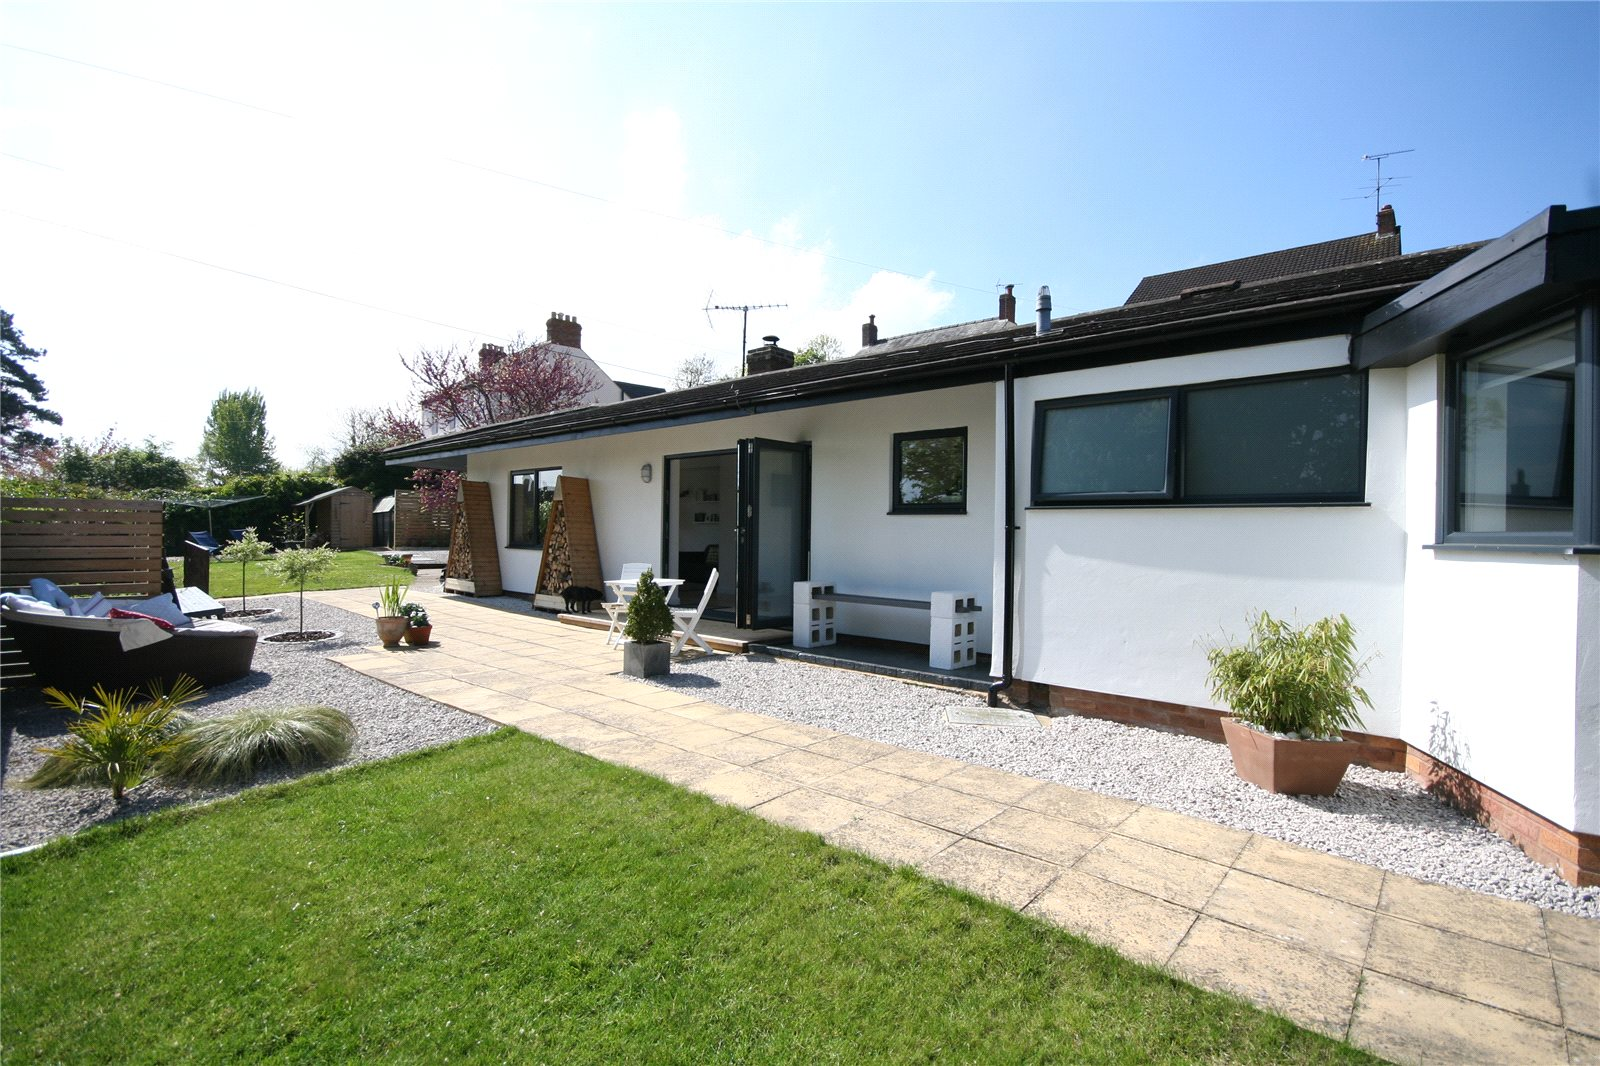 4 Bedrooms Bungalow for sale in Criftycraft Lane Churchdown Village GL3